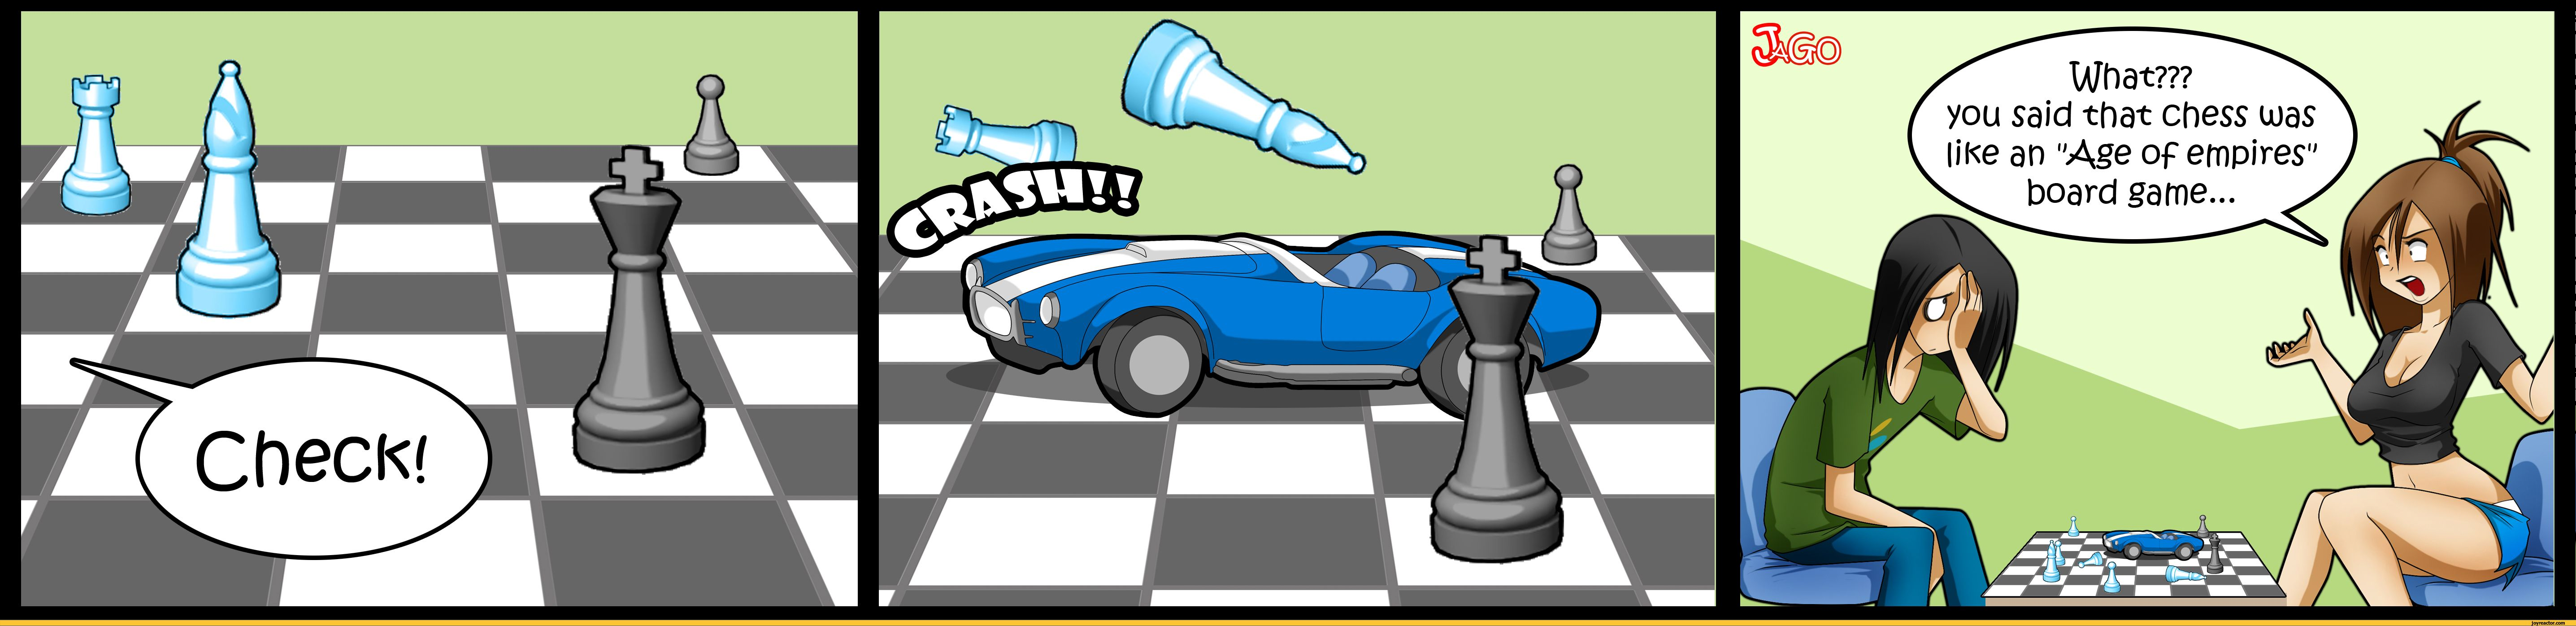 Chess Is Like Age Of Empires Sort Of Humor